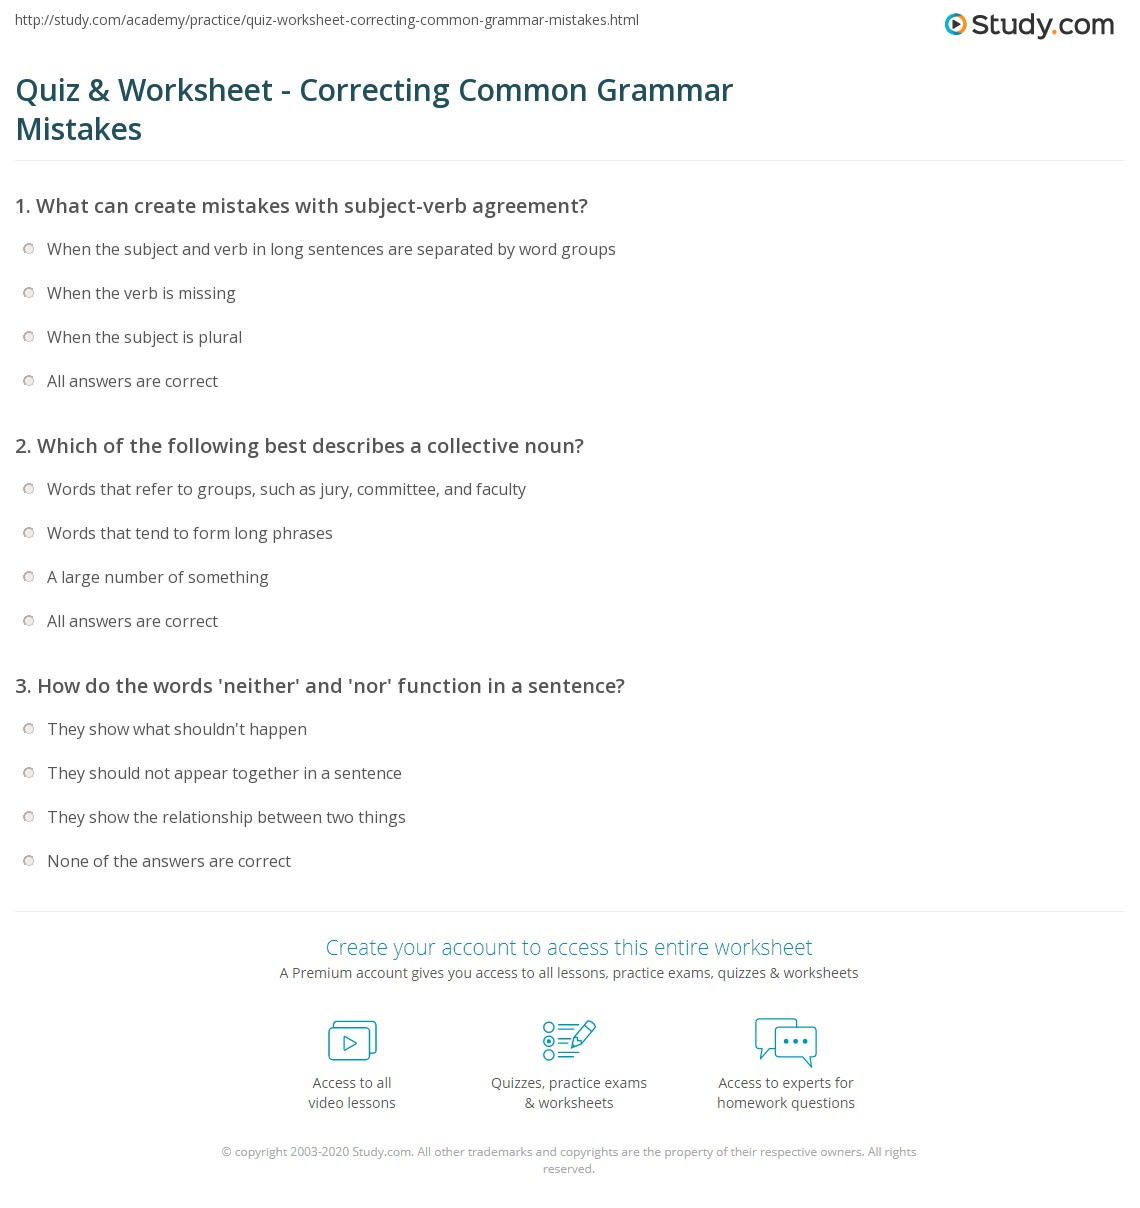 Sample Essay With Grammar Mistakes